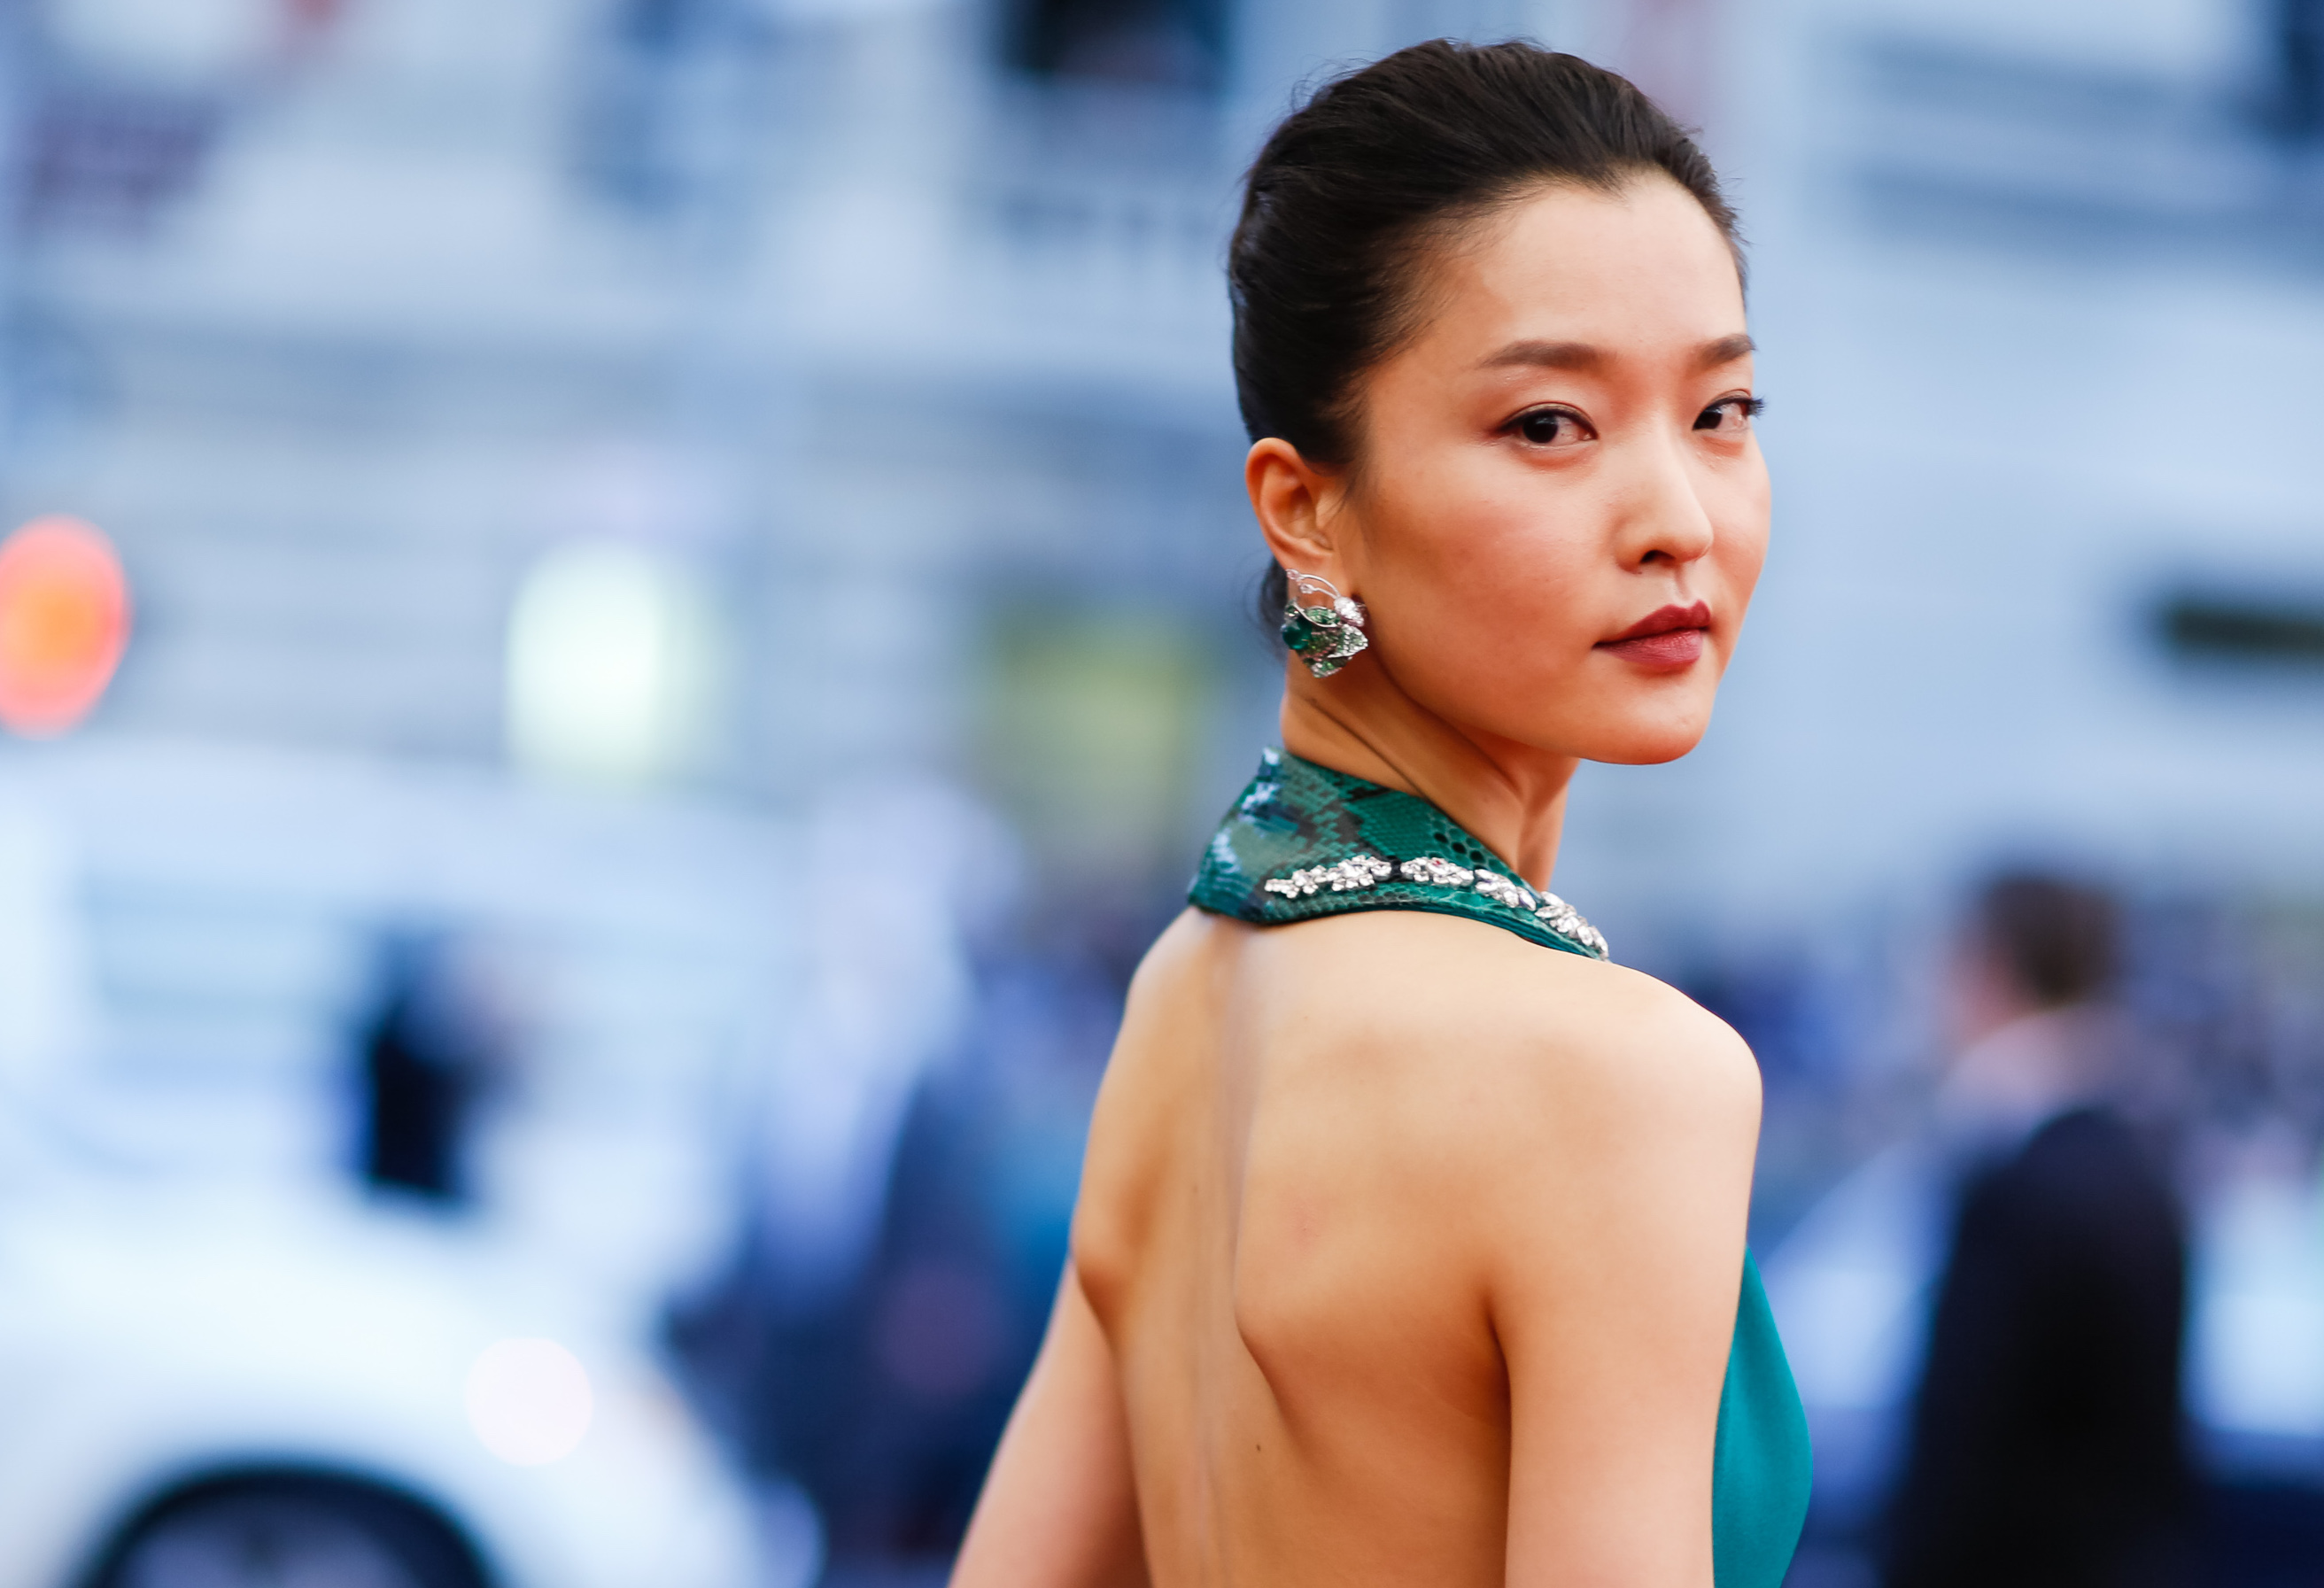 Du Juan was the first major Chinese model to strike it big on the international fashion scene.